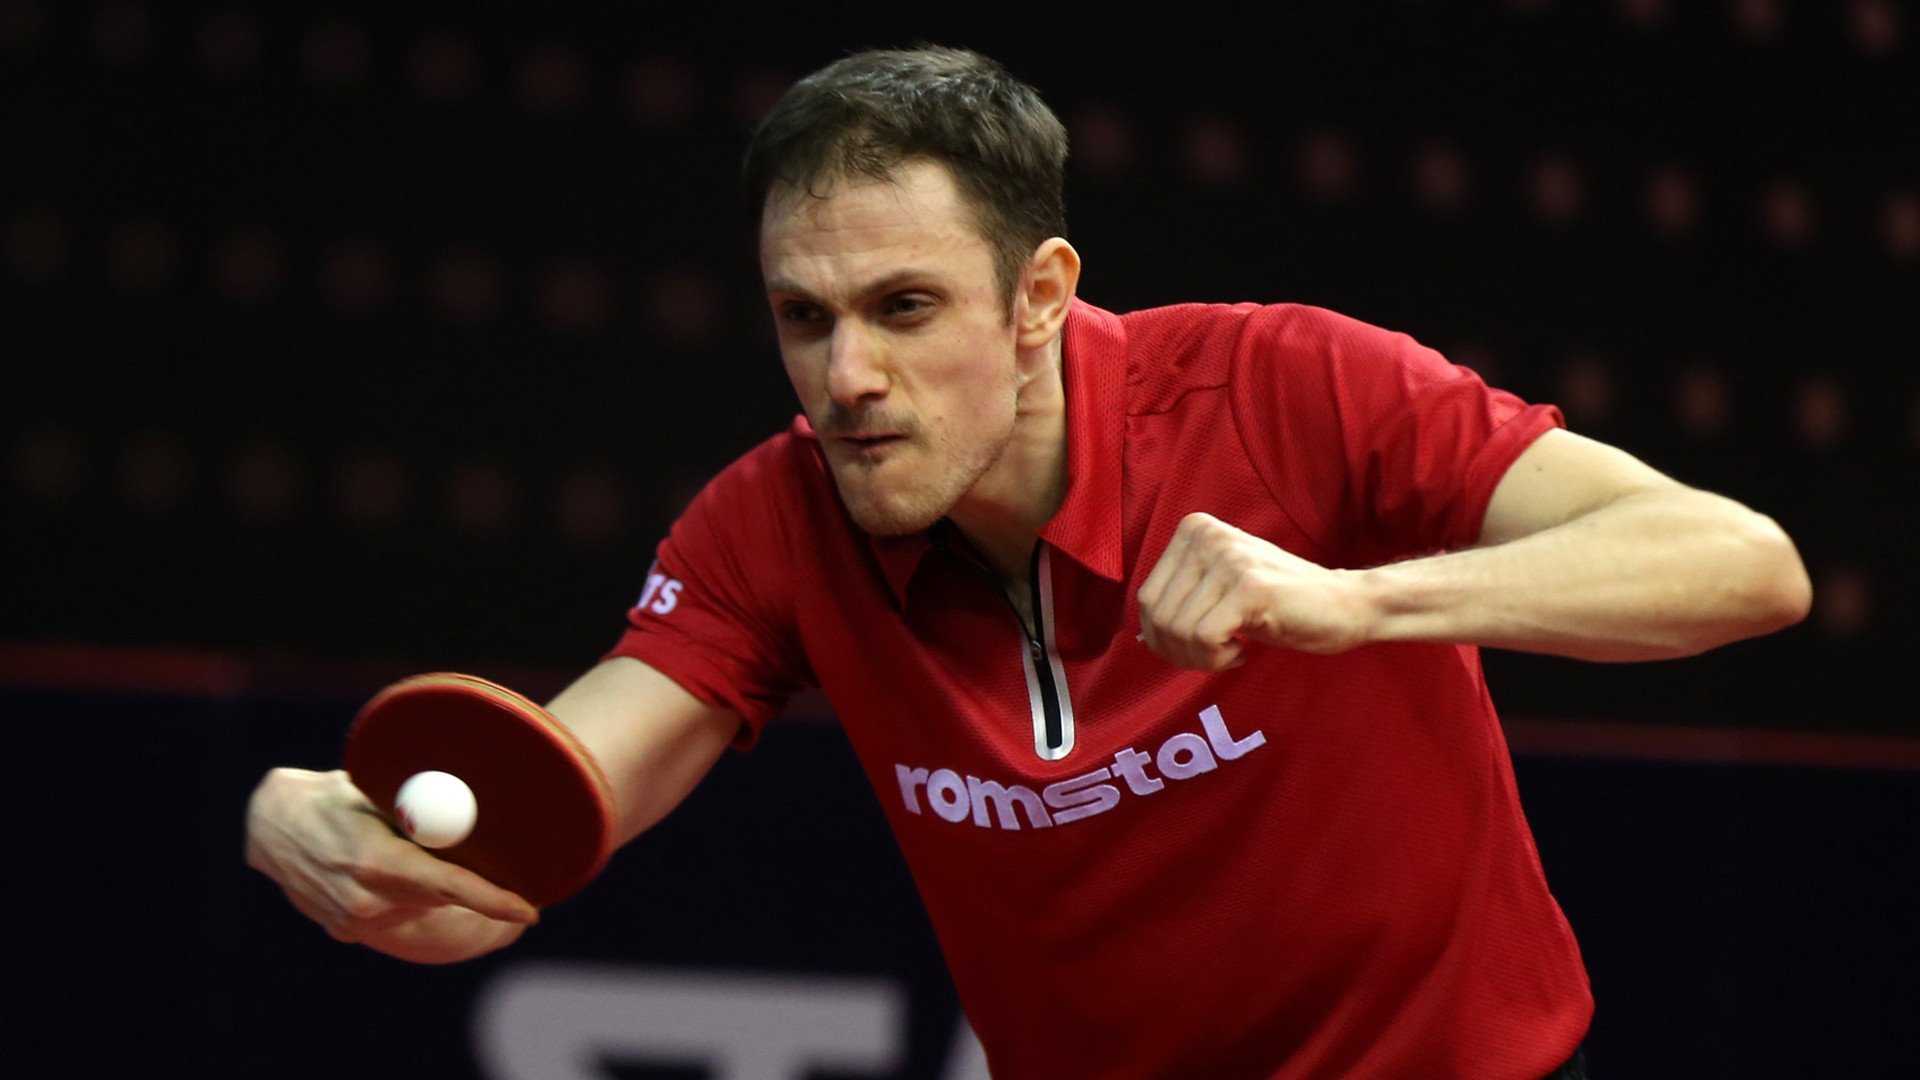 Romania's Ovidiu Ionescu suffered a shock defeat on the opening day of the ITTF's European Olympic Singles Qualification Tournament in Portugal ©ITTF